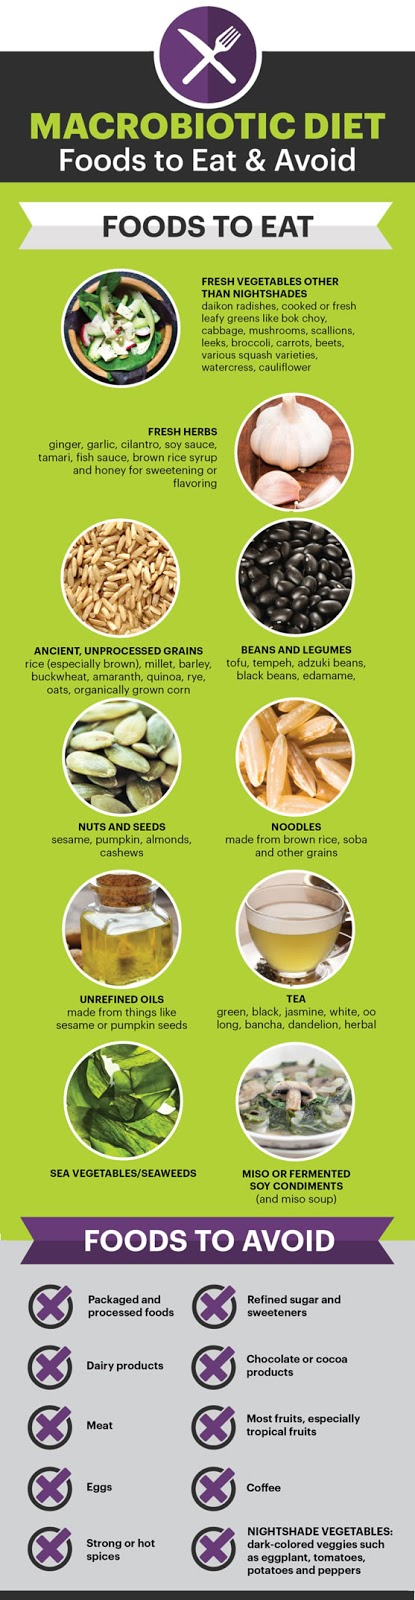 Macrobiotic diet infographic